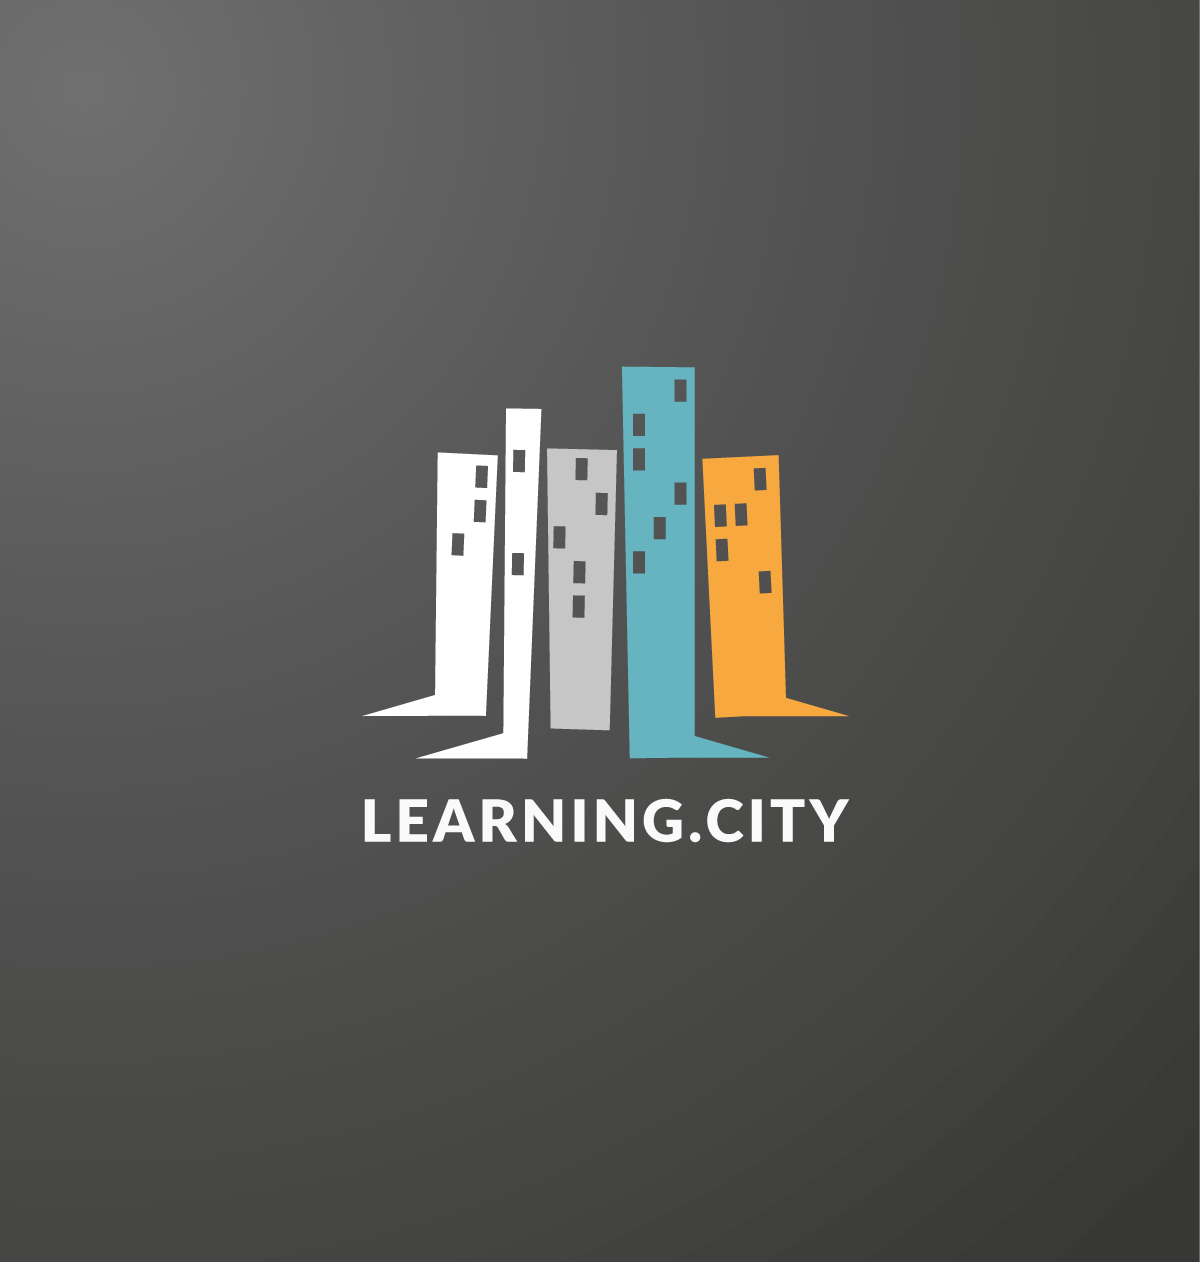 Learning City – A Social Idea